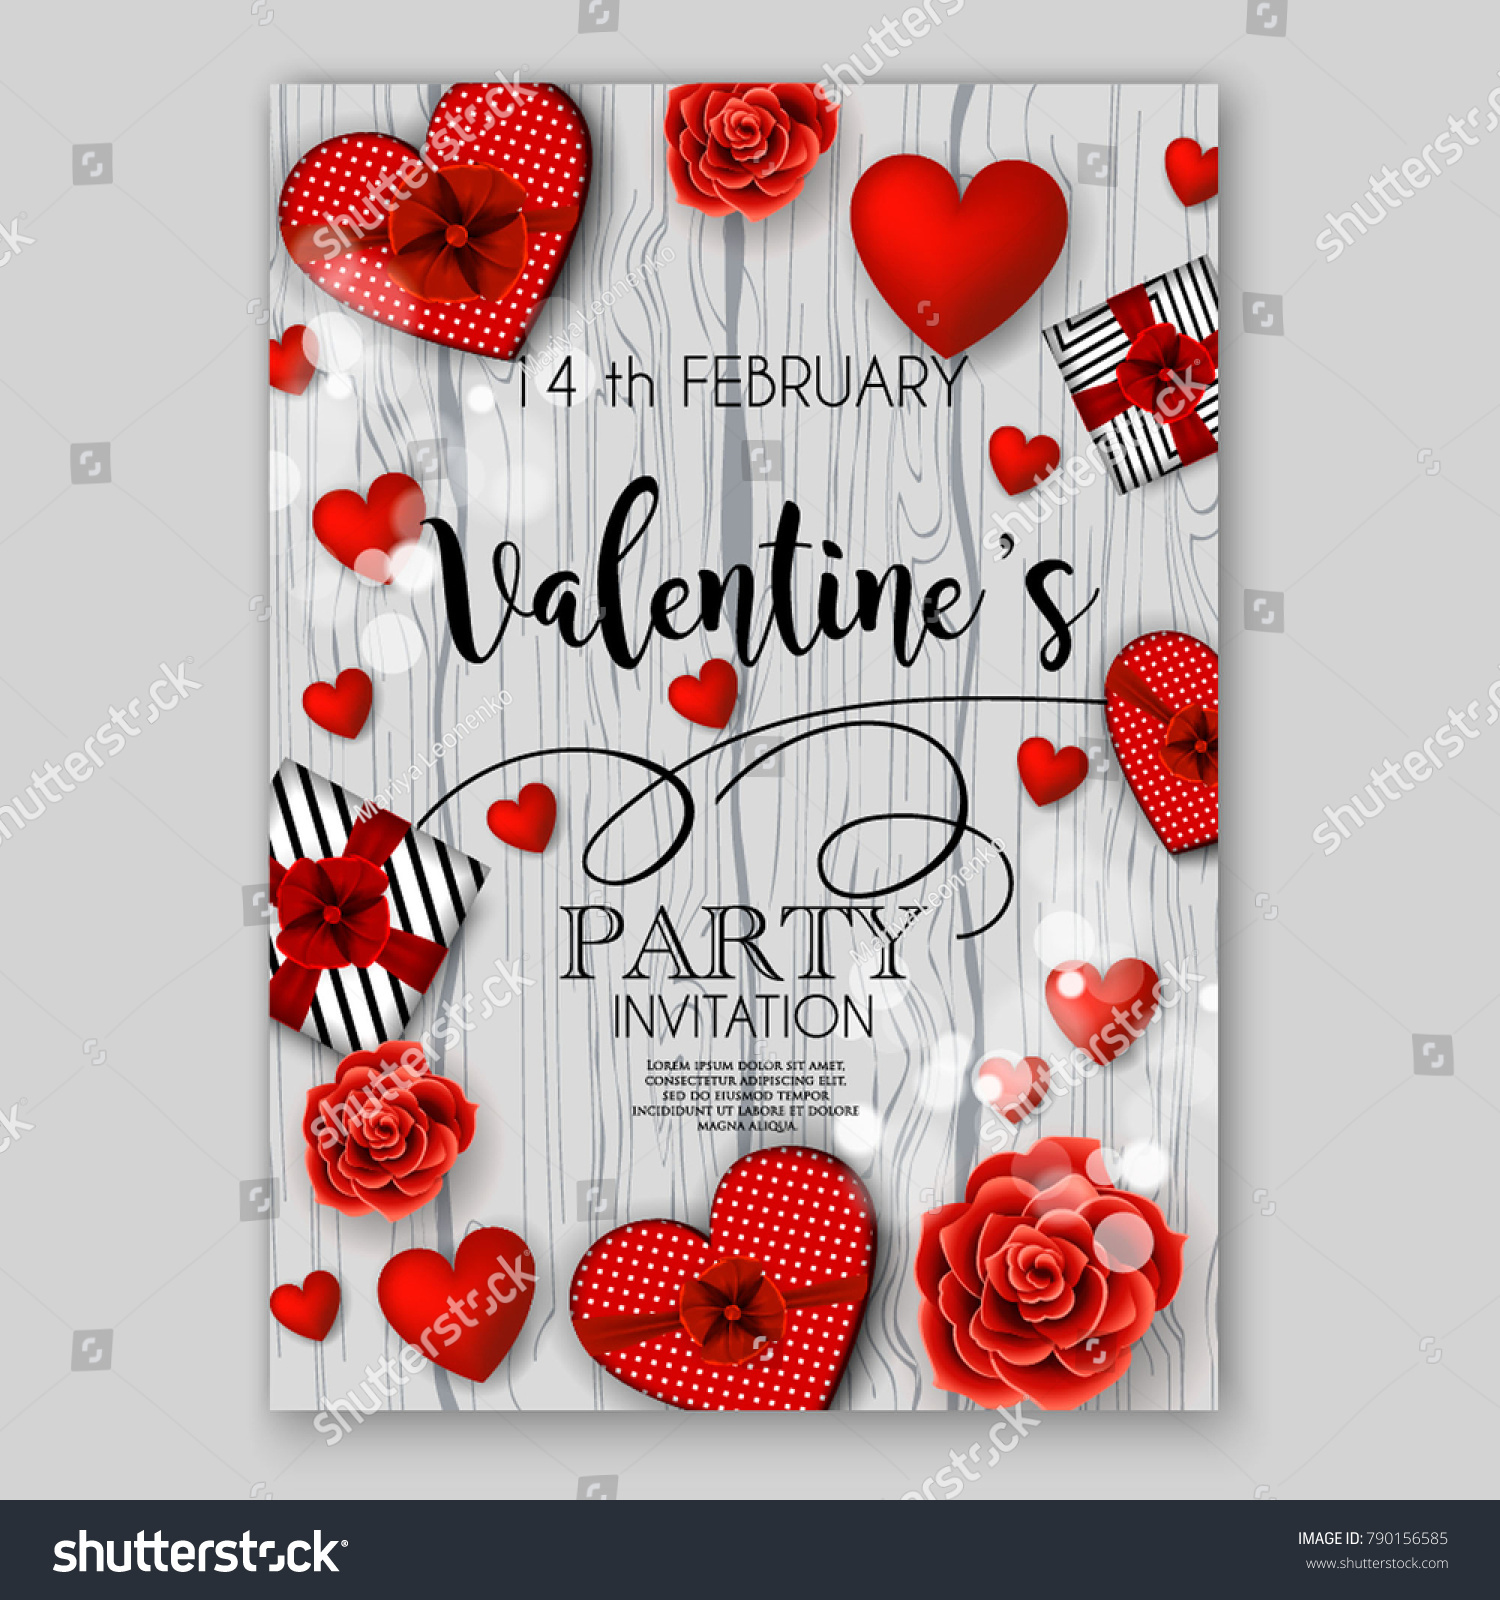 Valentines Day Party Invitation Heart Wedding Stock Vector HD ...